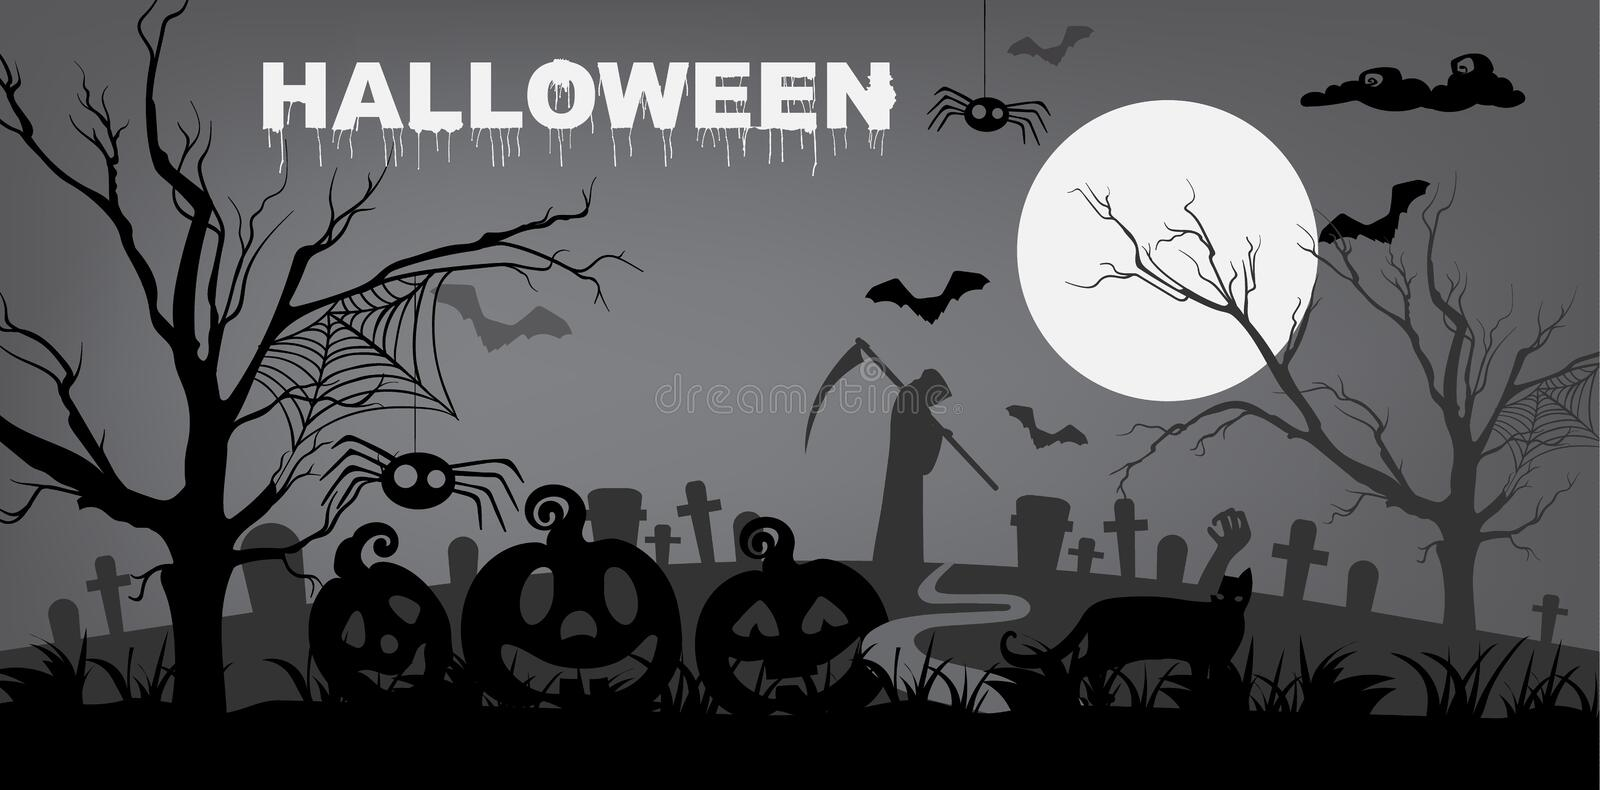 Gloomy halloween background. Gloomy halloween with cemetery, Grim Reaper death, pumpkins, spiders and trees. Holiday background vector stock illustration